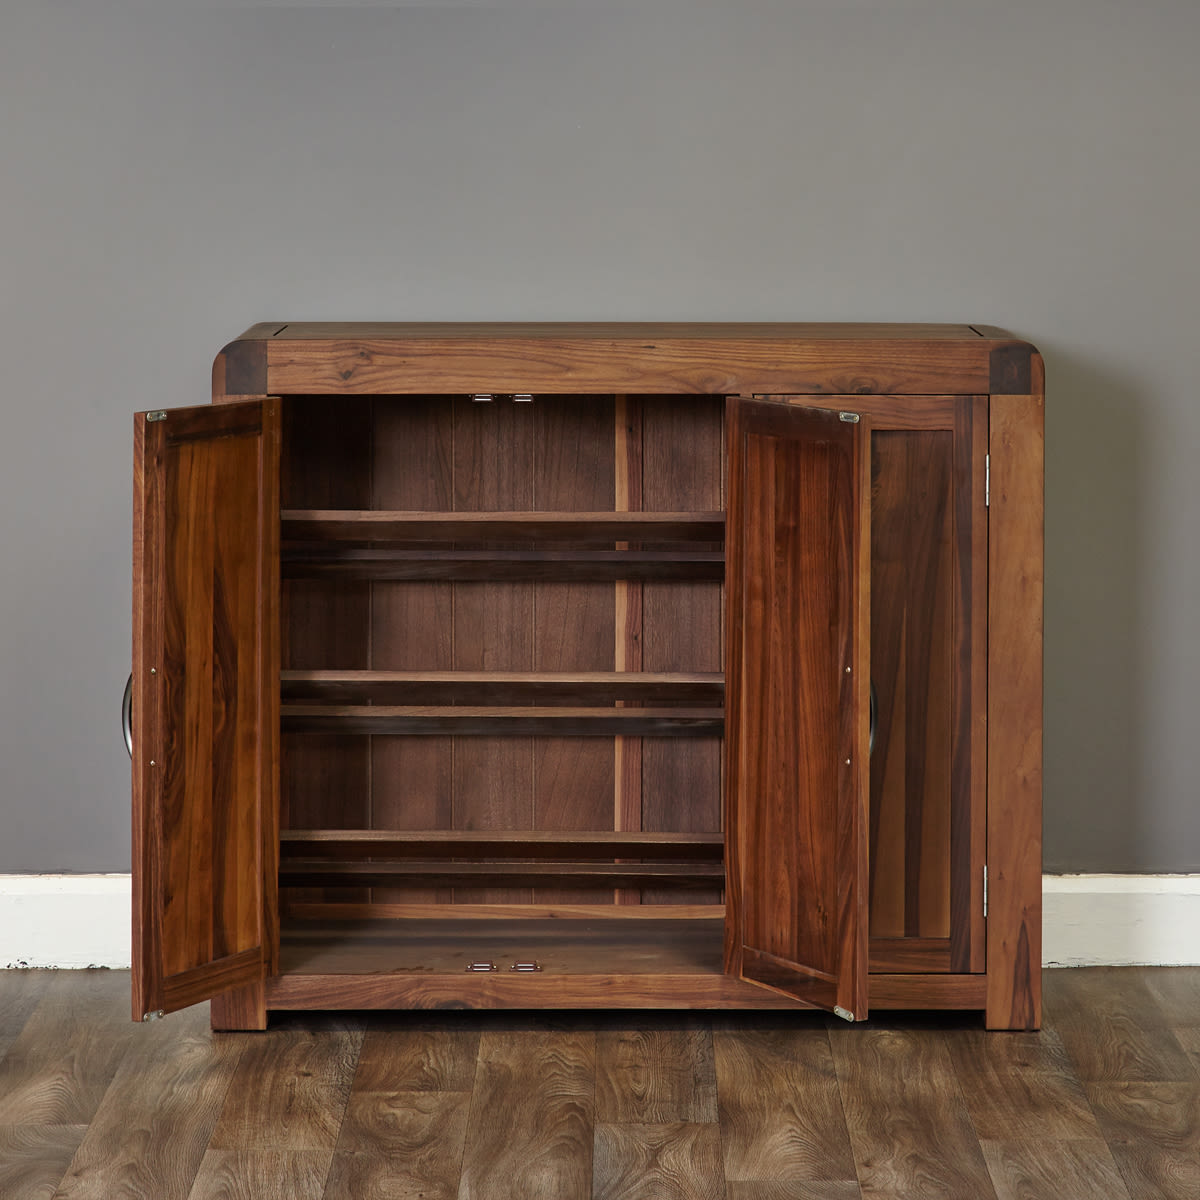 Shiro Walnut Extra Large Shoe Cupboard Was £720.00 Now £